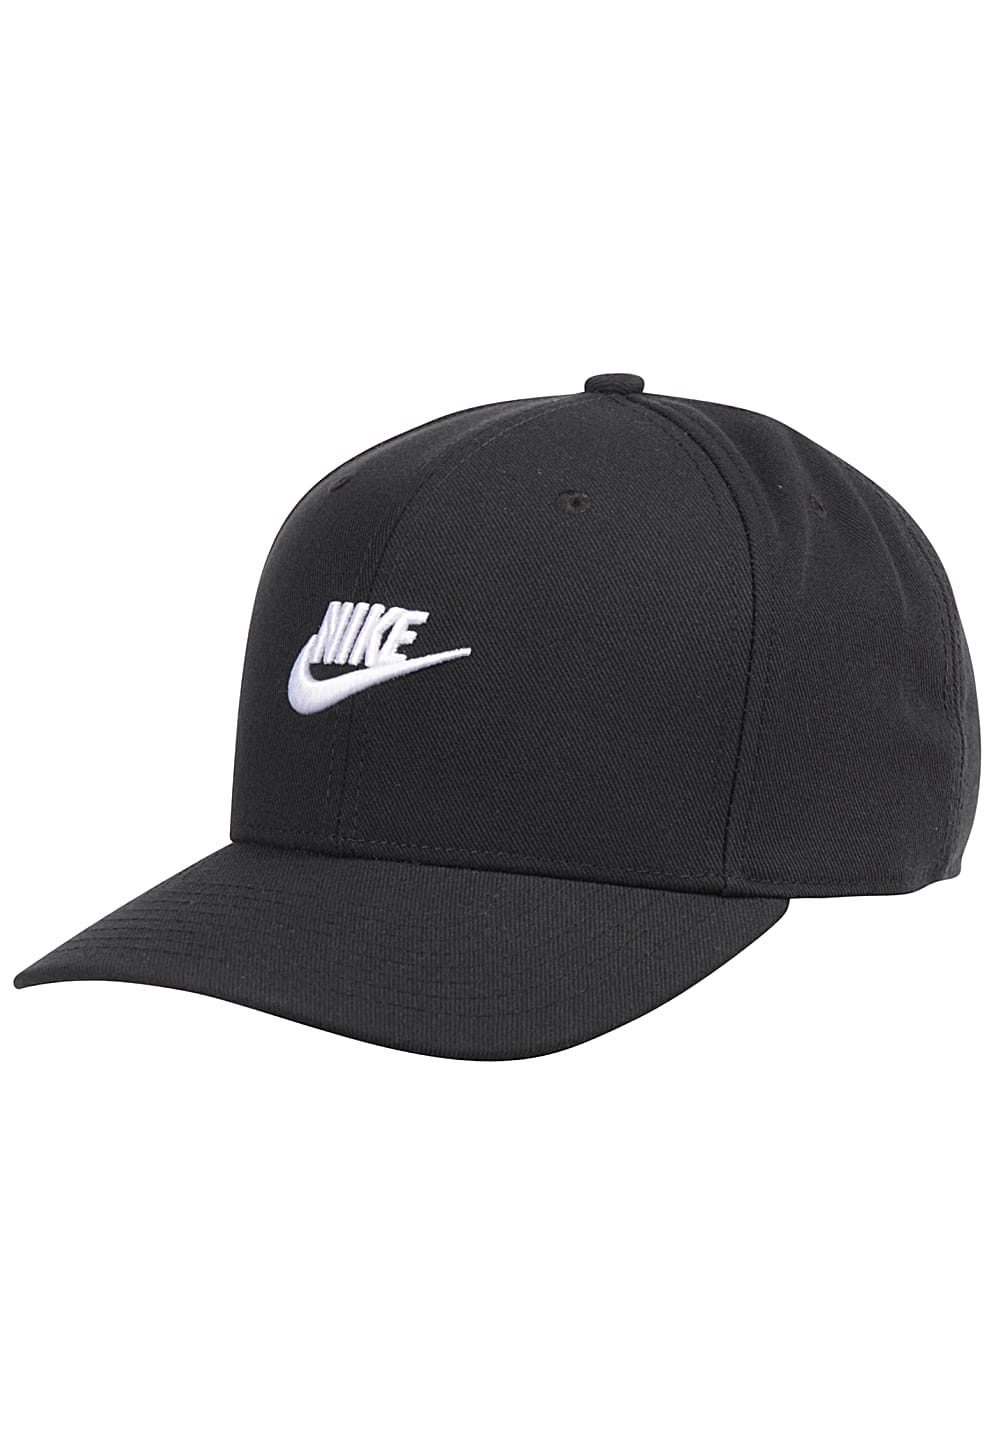 shoes for cheap how to buy online here NIKE SPORTSWEAR Clc99 Fut - Snapback Cap - Black